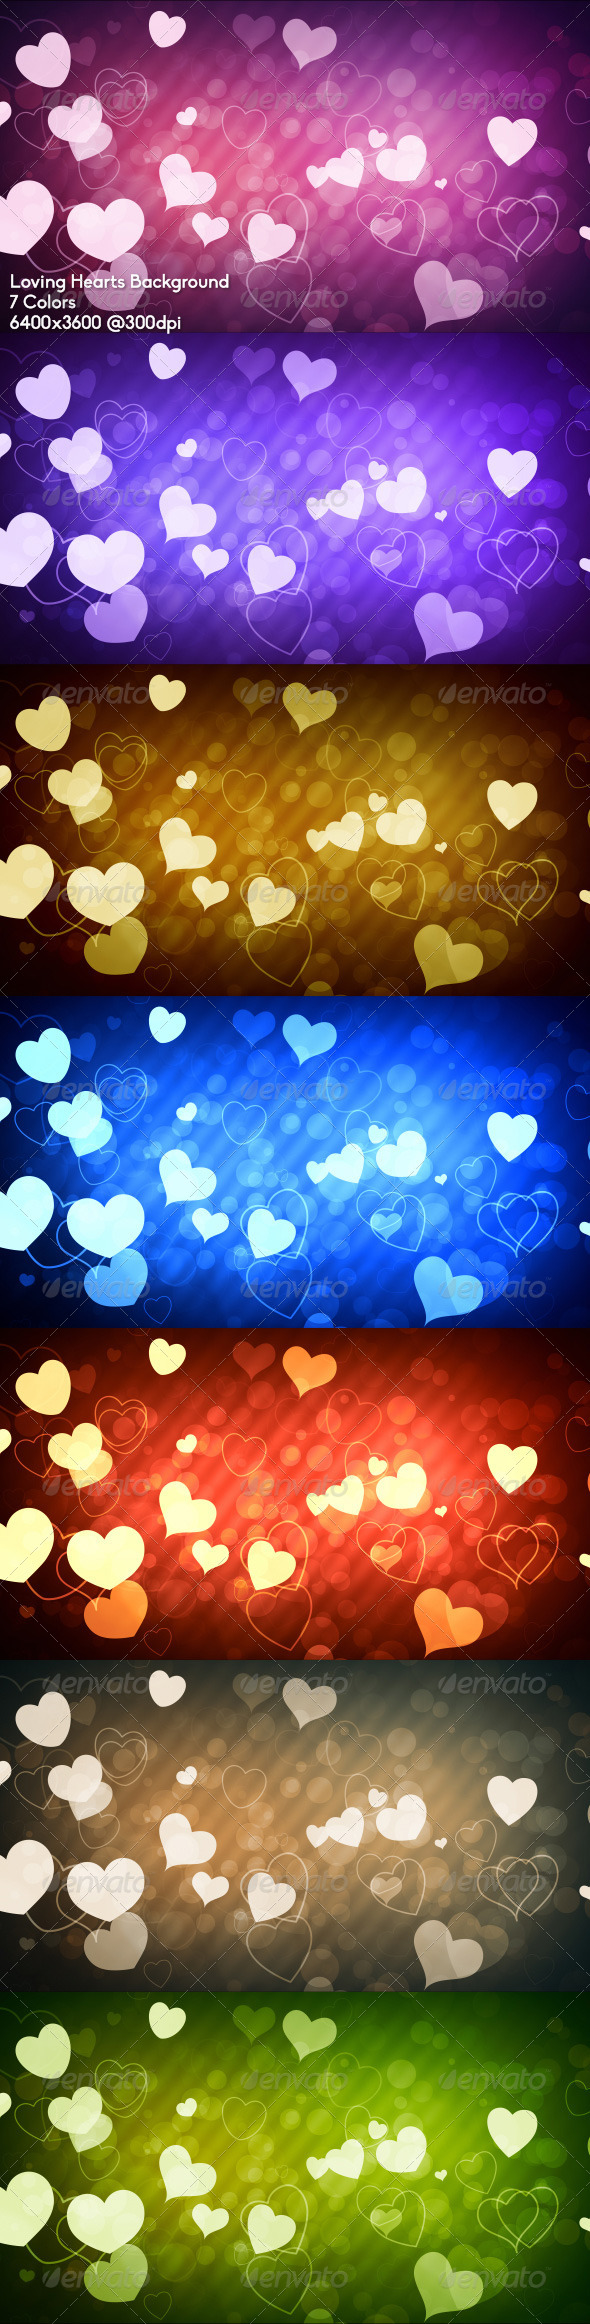 Loving Hearts Background - Abstract Backgrounds